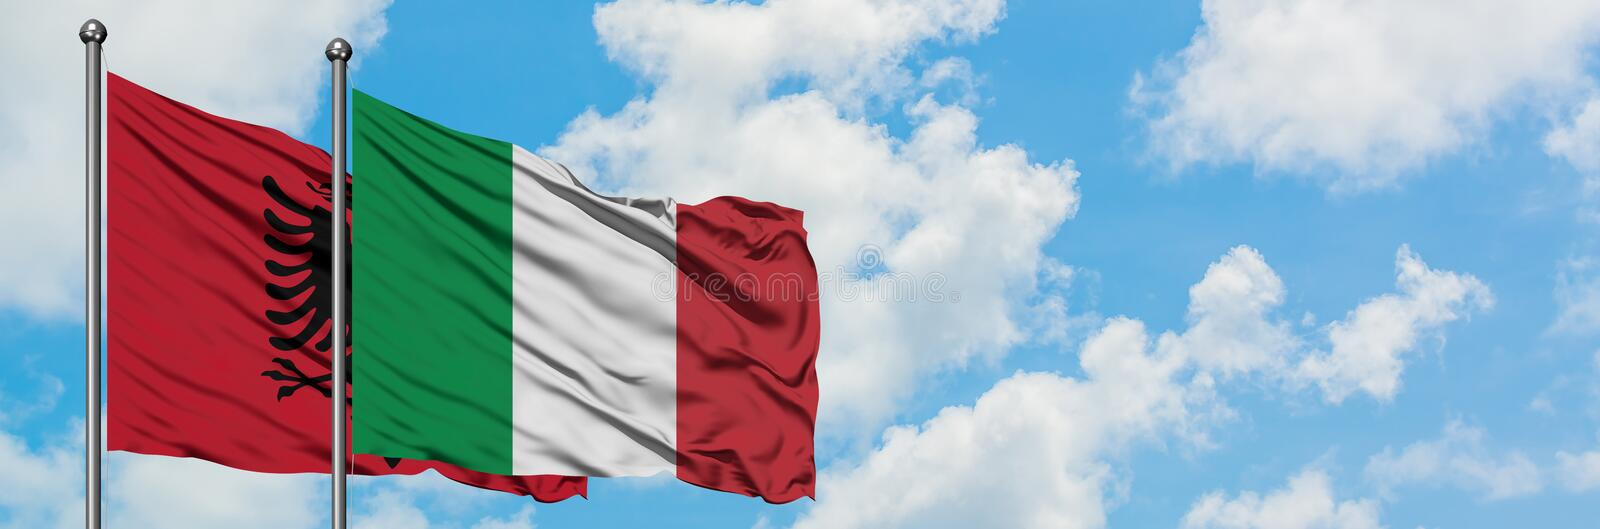 Albania and Italy flag waving in the wind against white cloudy blue sky together. Diplomacy concept, international relations. Peace, agreement, anthem royalty free stock image